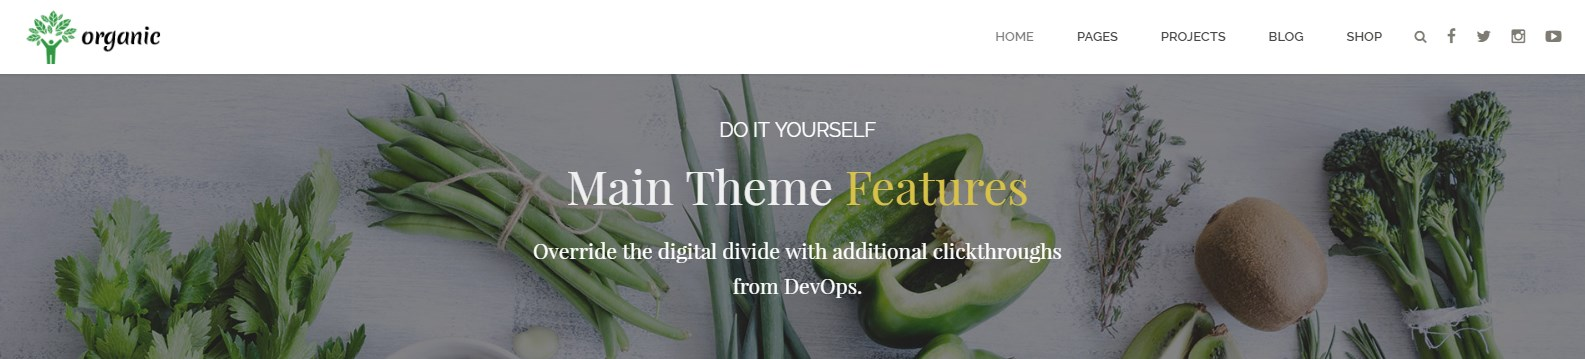 http://documentation.bold-themes.com/organic-food/wp-content/uploads/sites/6/2016/07/32-1.jpg